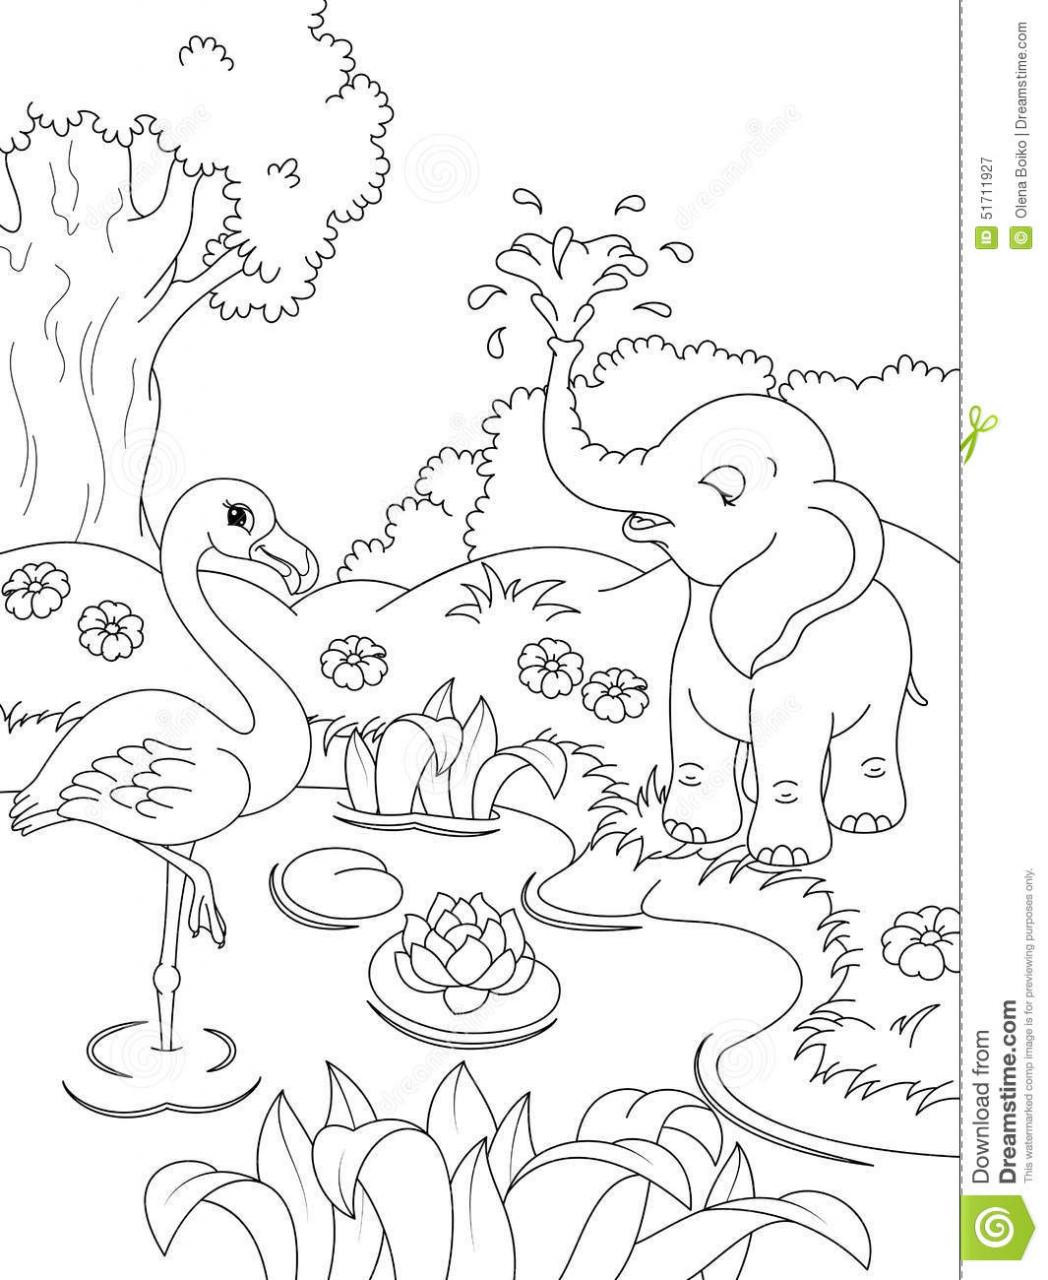 Nature Coloring Pages For Kids  Nature Animal Coloring Pages Coloring Page For Kids